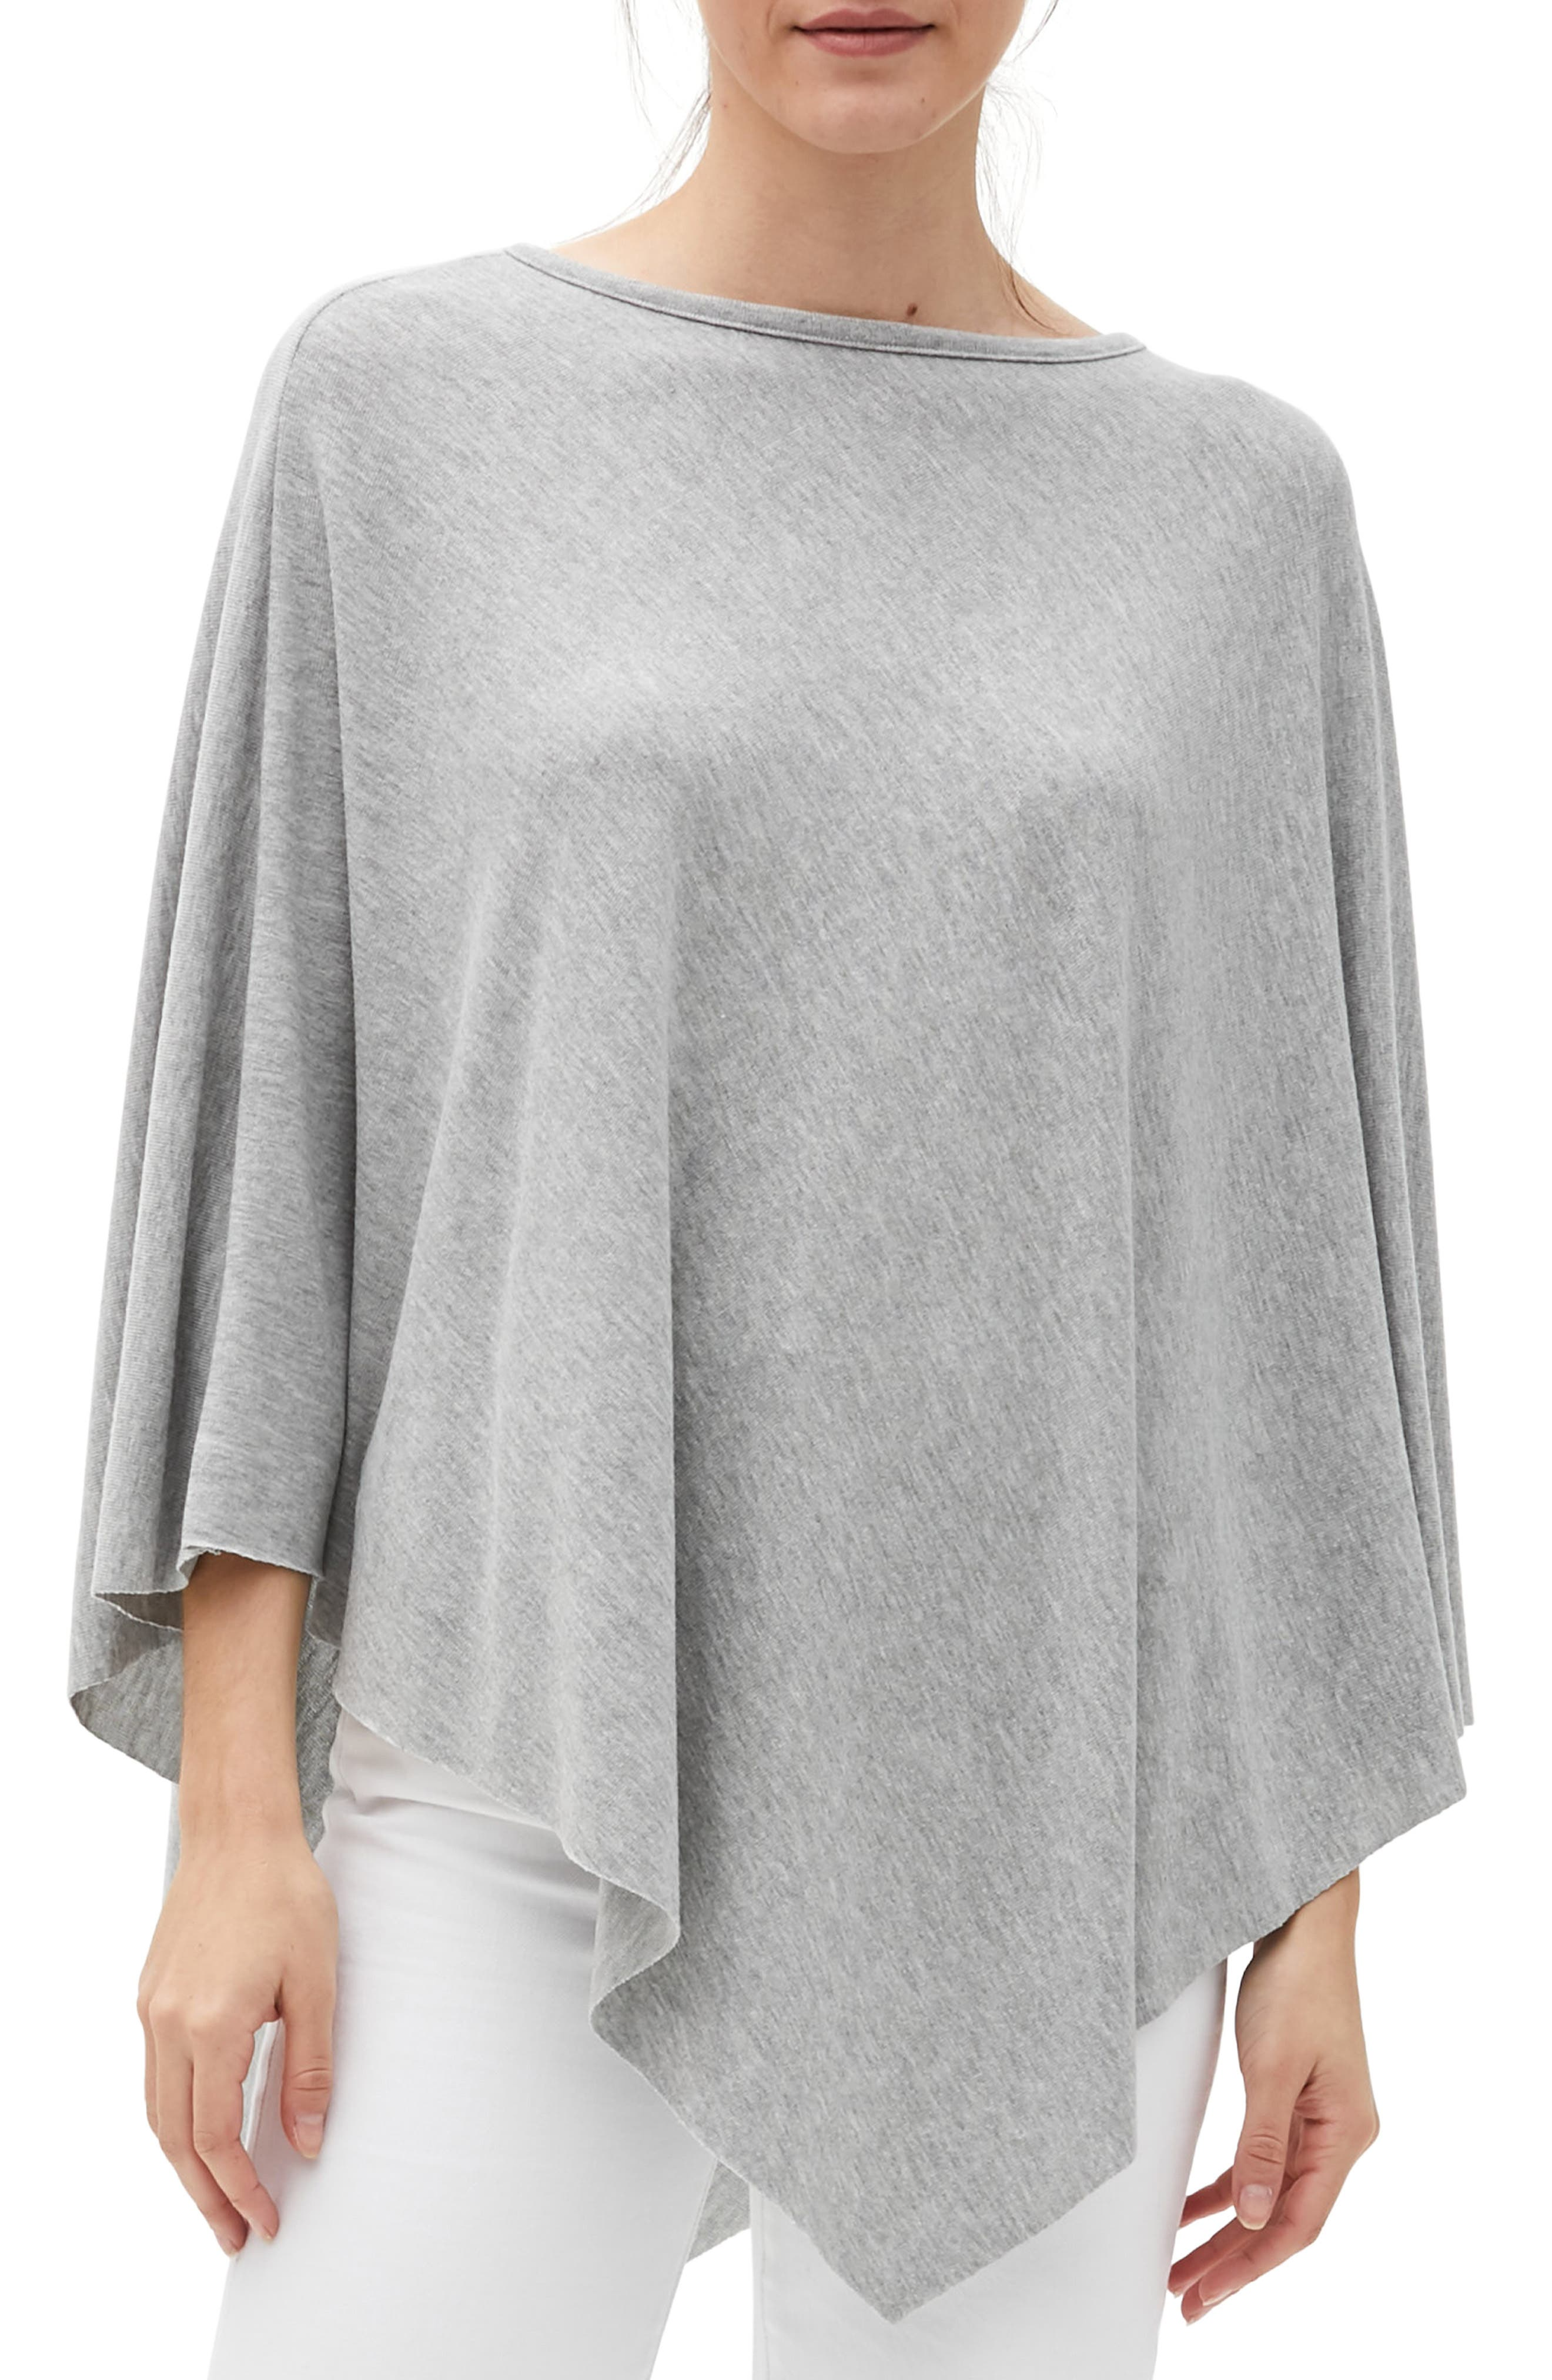 Feel the warmth of this soft poncho designed in an elegant drape with a chic asymmetrical hem. Style Name: Michael Stars Persephone Boat Neck Poncho. Style Number: 6111123. Available in stores.